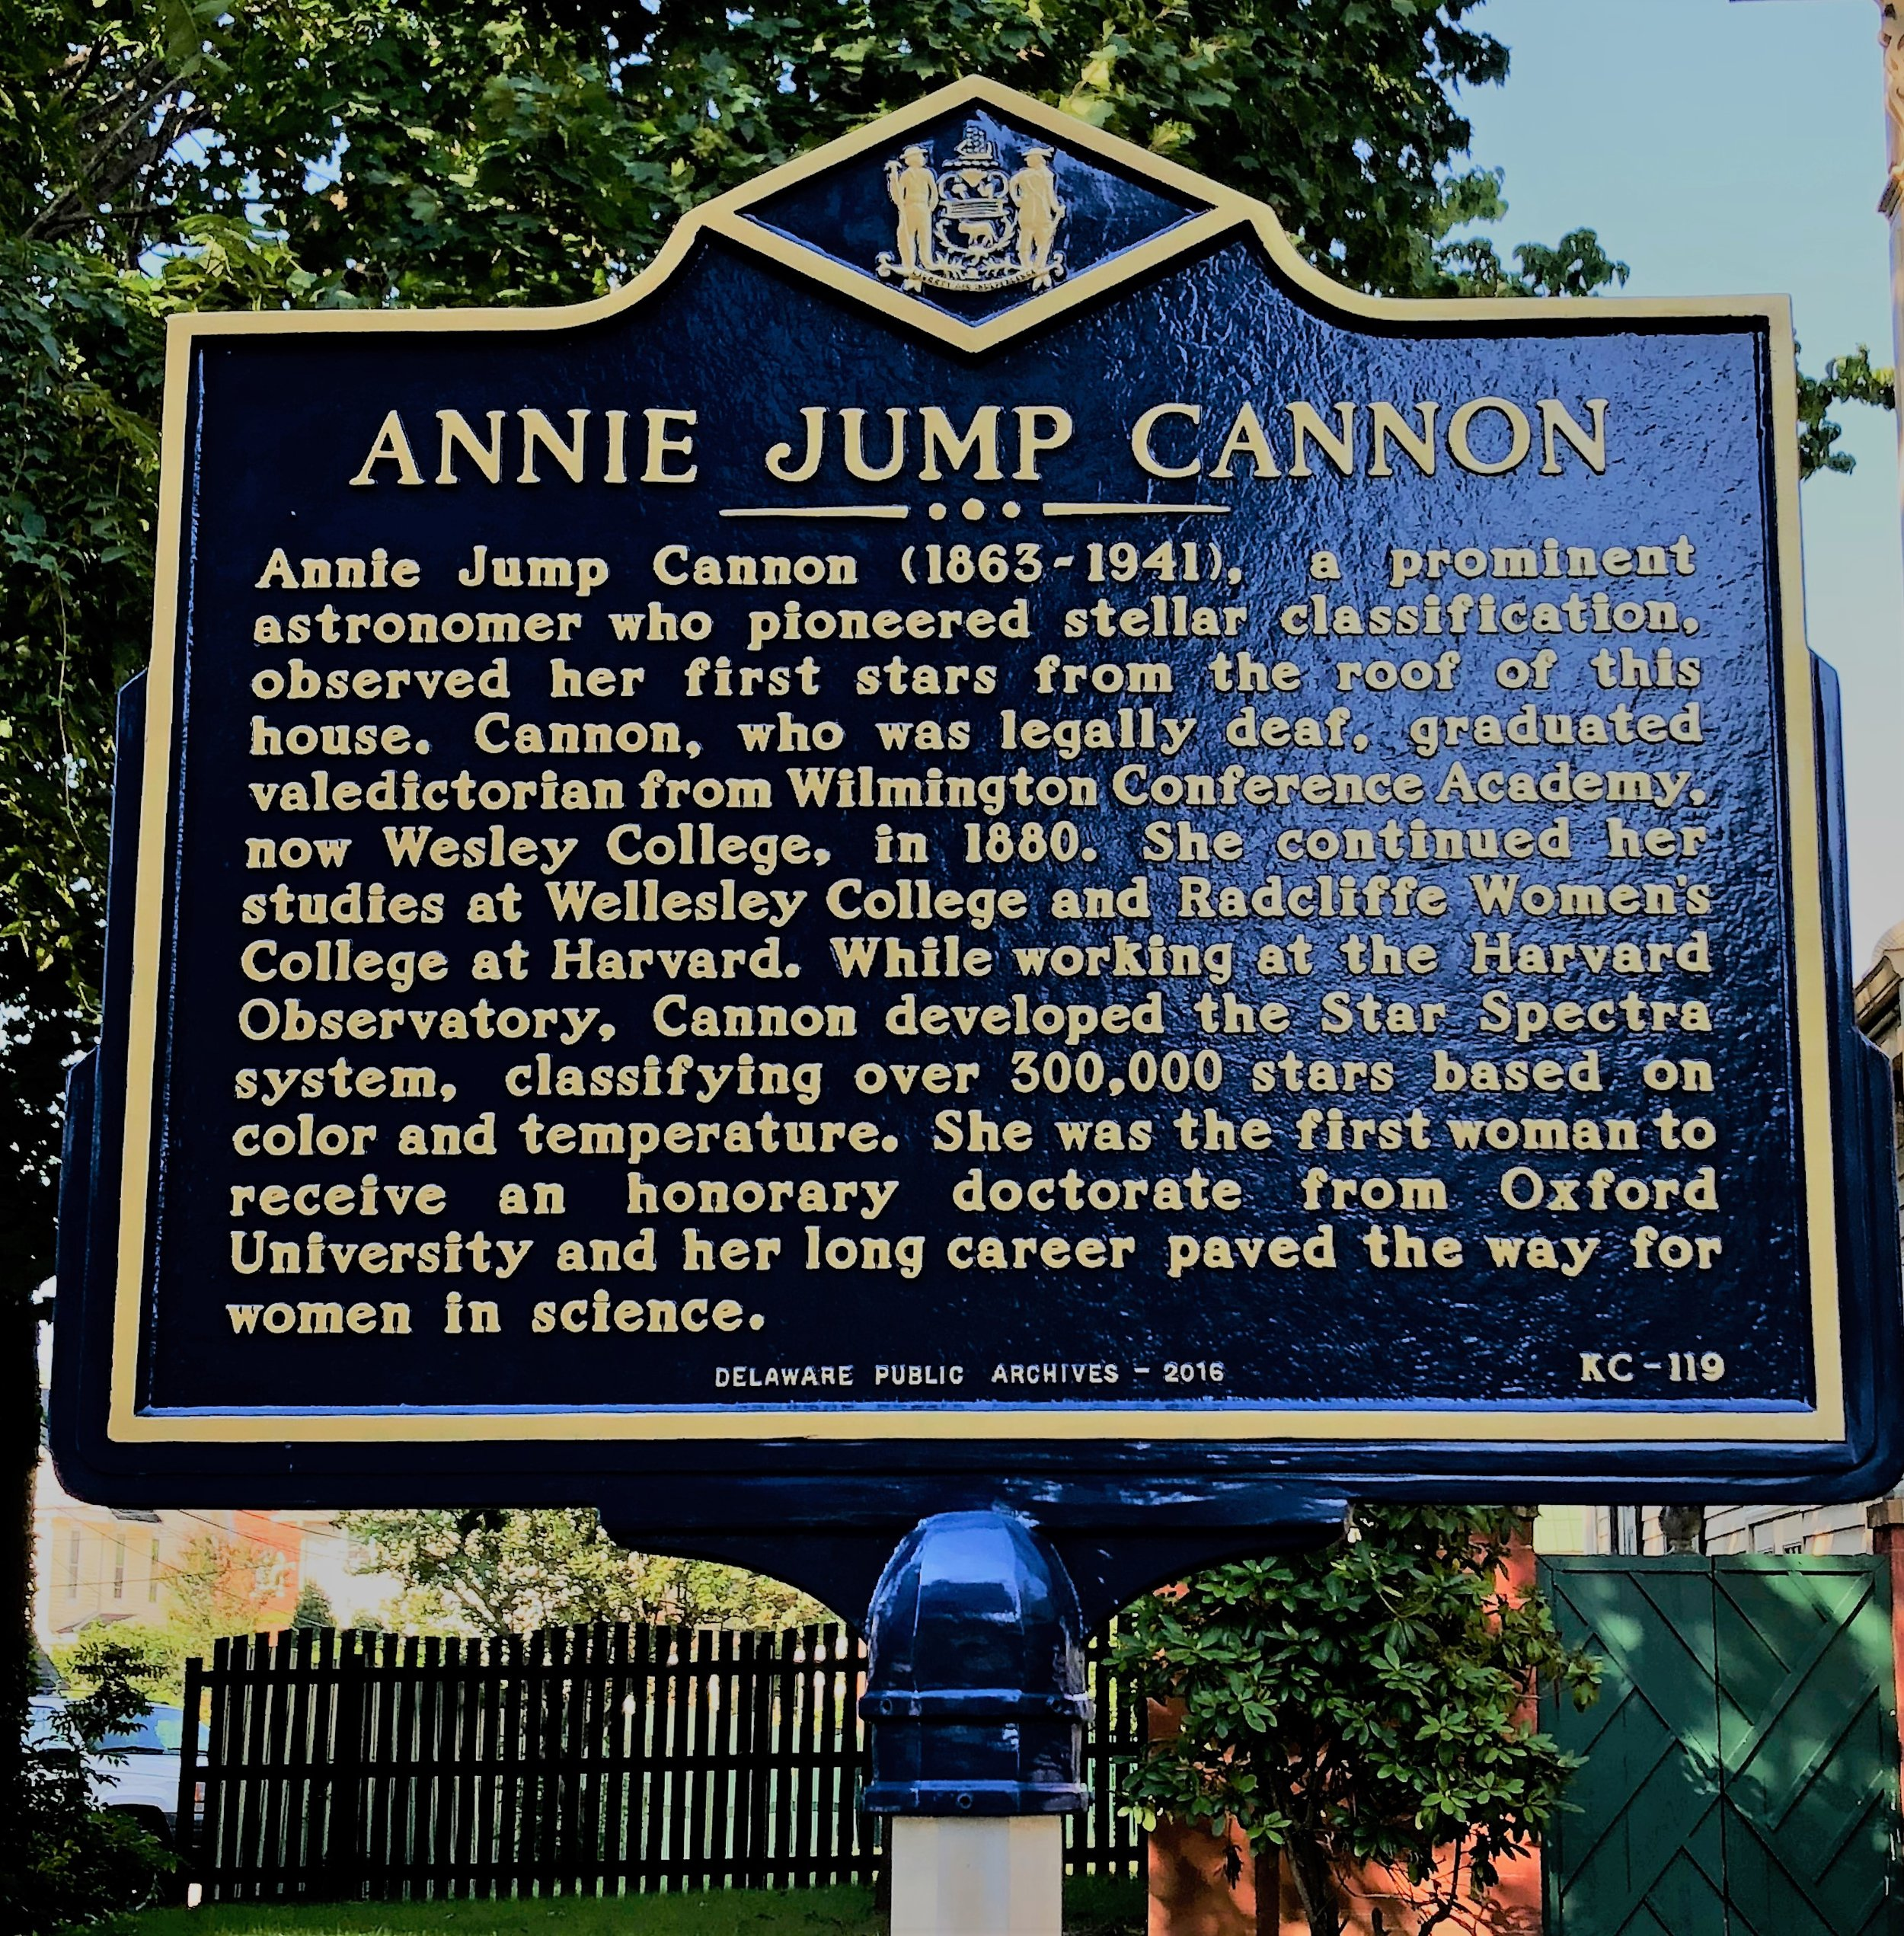 Cannon Home Tour 12/9/18 - Especially for history buffs, join us for the house mini-tour. Annie Jump Cannon Birthday Celebration is celebrated each December. For details please visit the website for info.